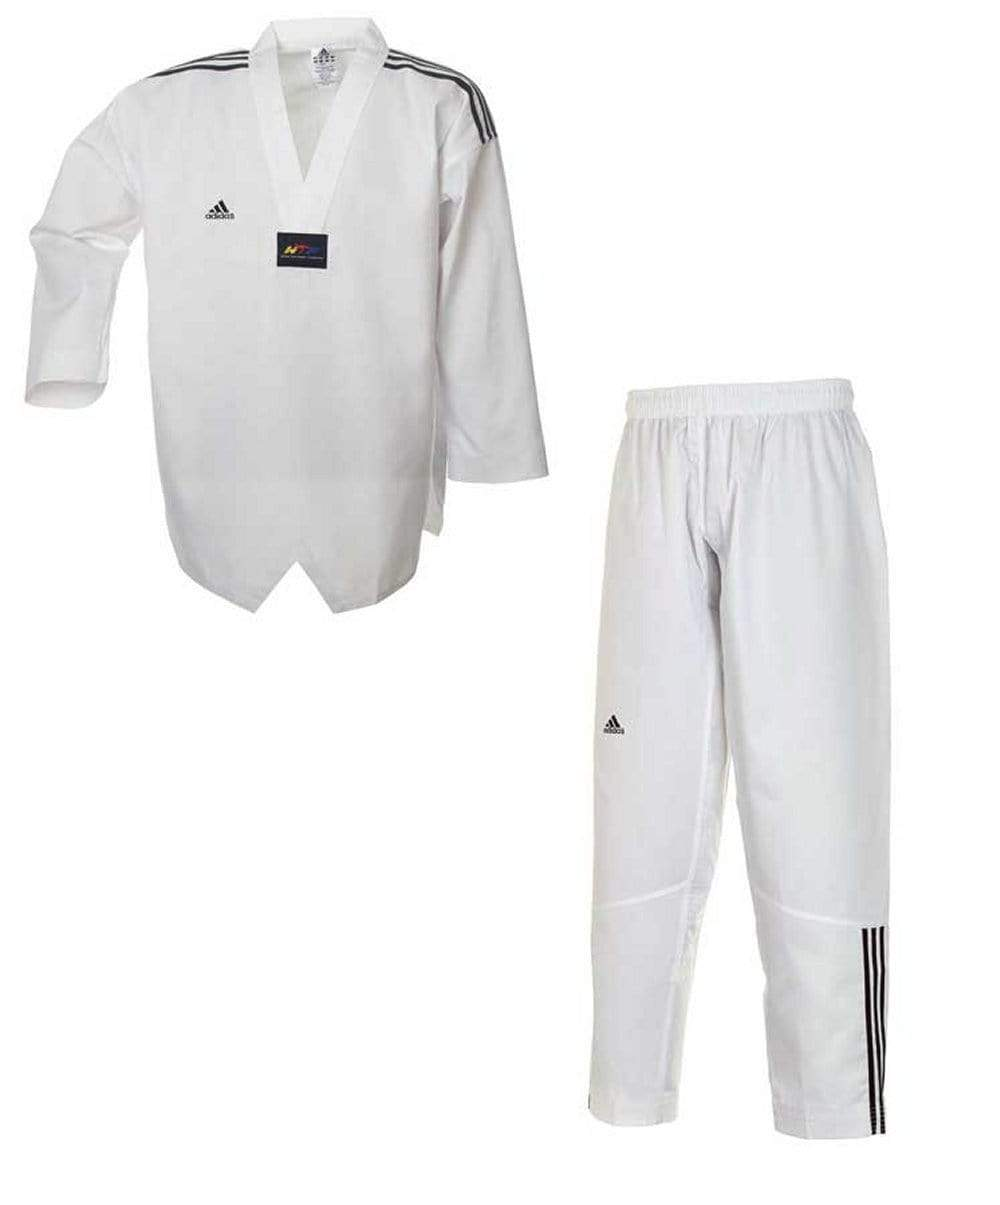 ADI CLUB TKD UNIFORM WITH 3 STRIPES d-U21CU3 - BlackBeltShop